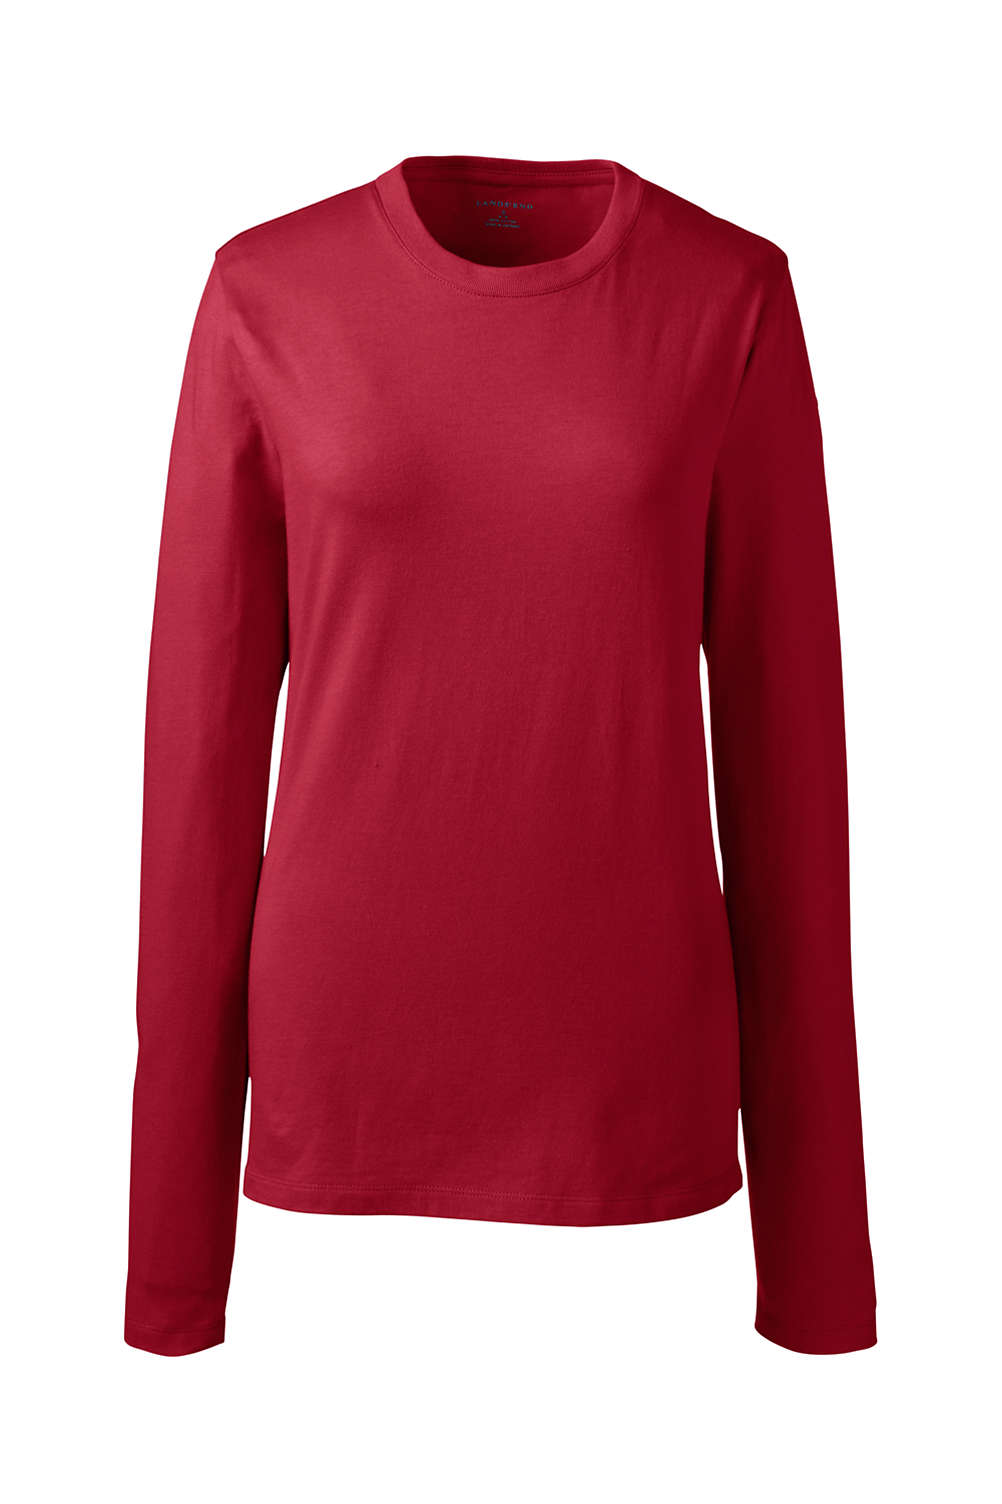 6331457c Women's Long Sleeve Essential T-shirt from Lands' End